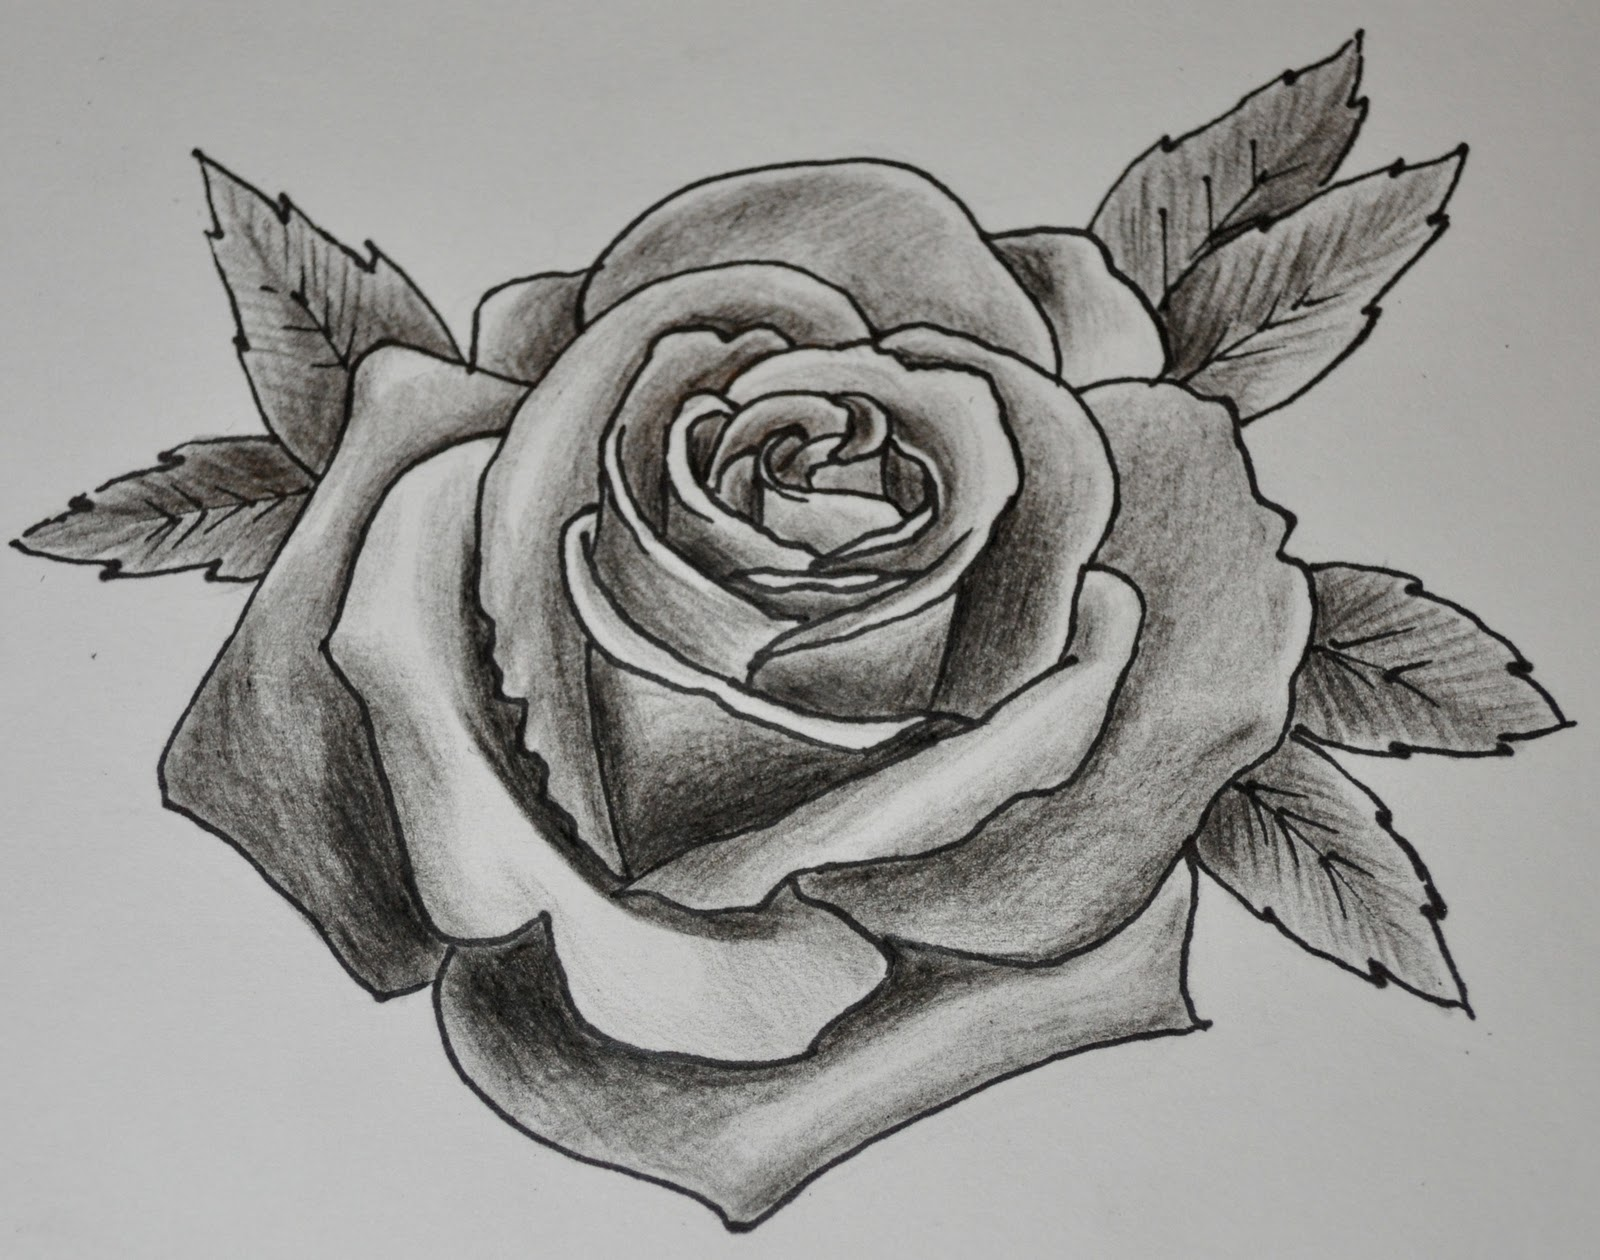 Drawn rose black gray rose New New Rose Grey Design